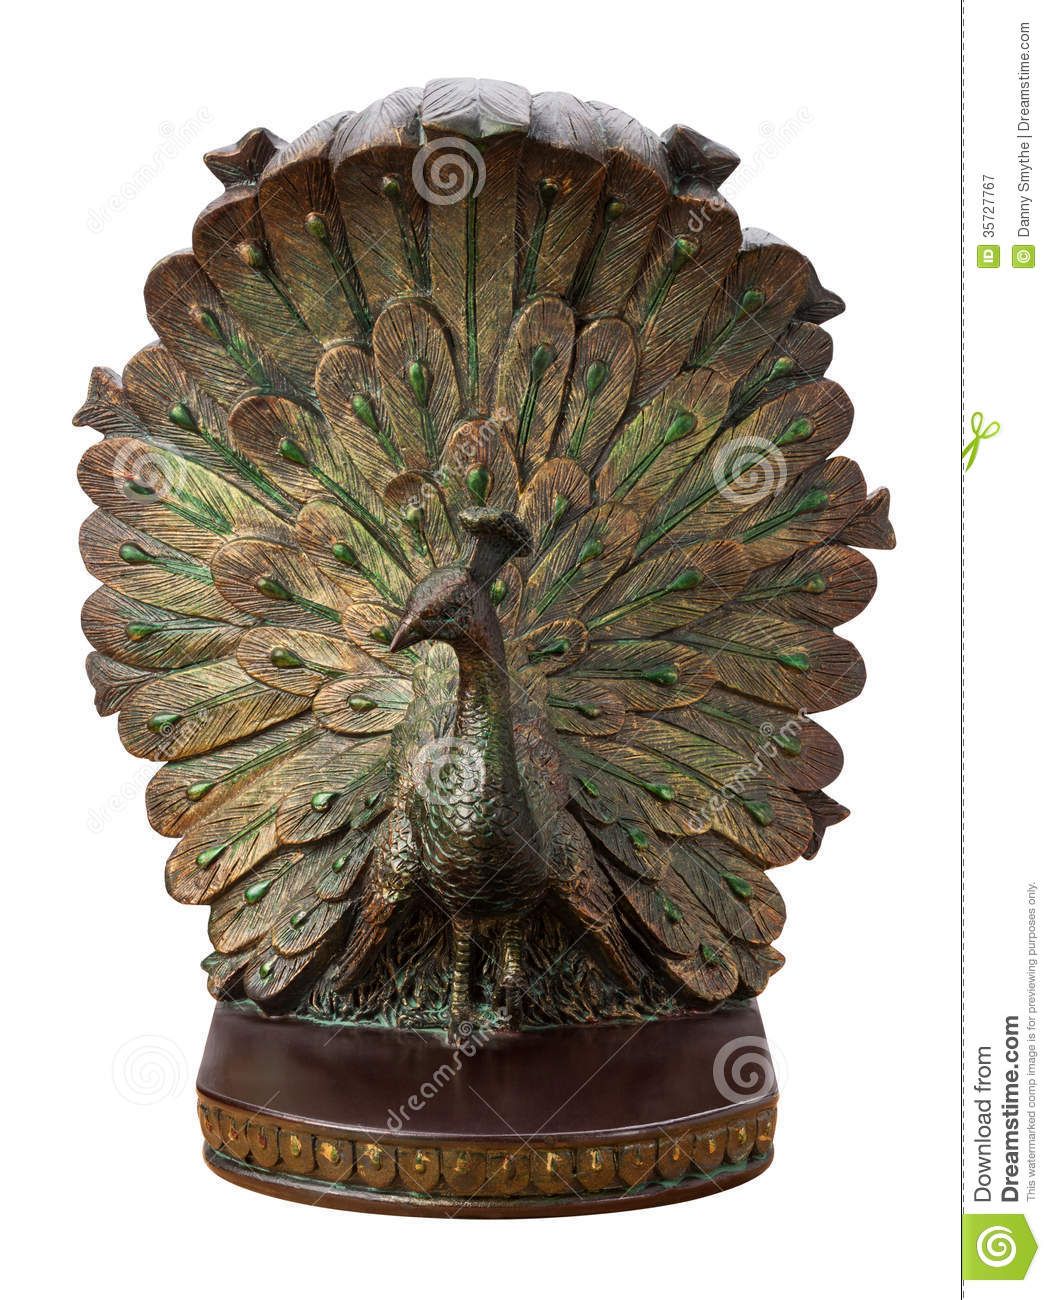 Bronze Peacock Bookend Isolated Royalty Free Stock Photography Image 35727767